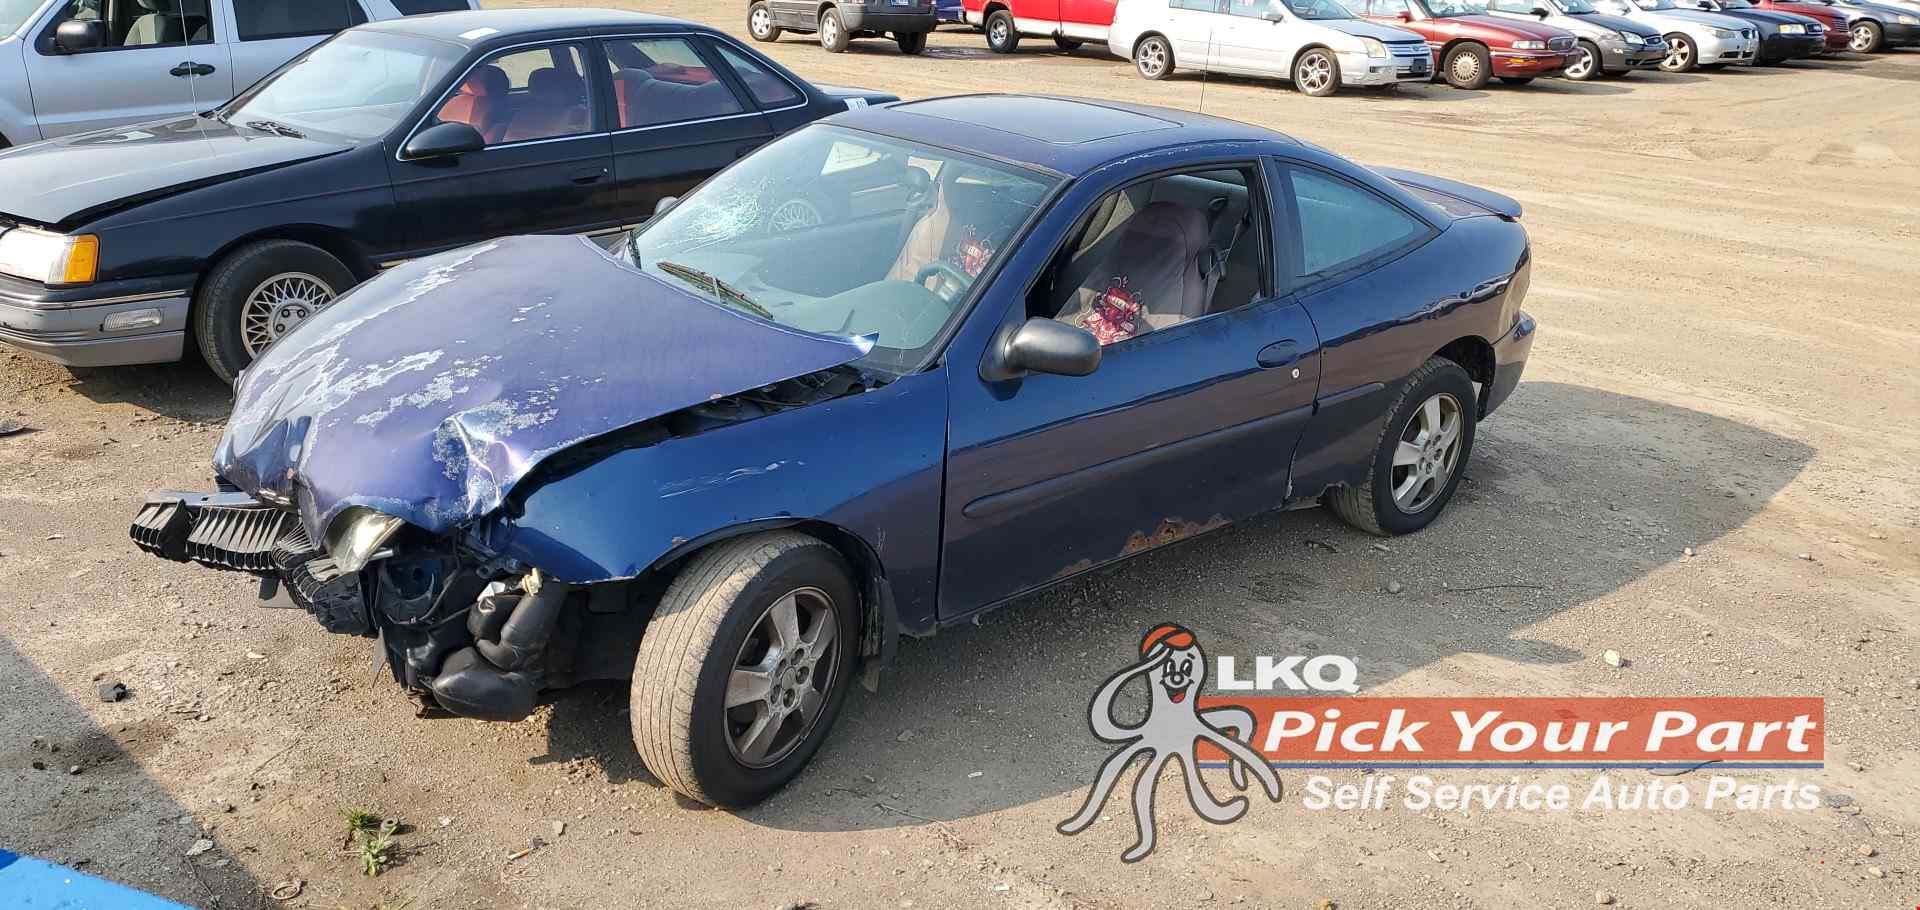 2002 chevrolet cavalier lkq pick your part fort wayne lkq pick your part